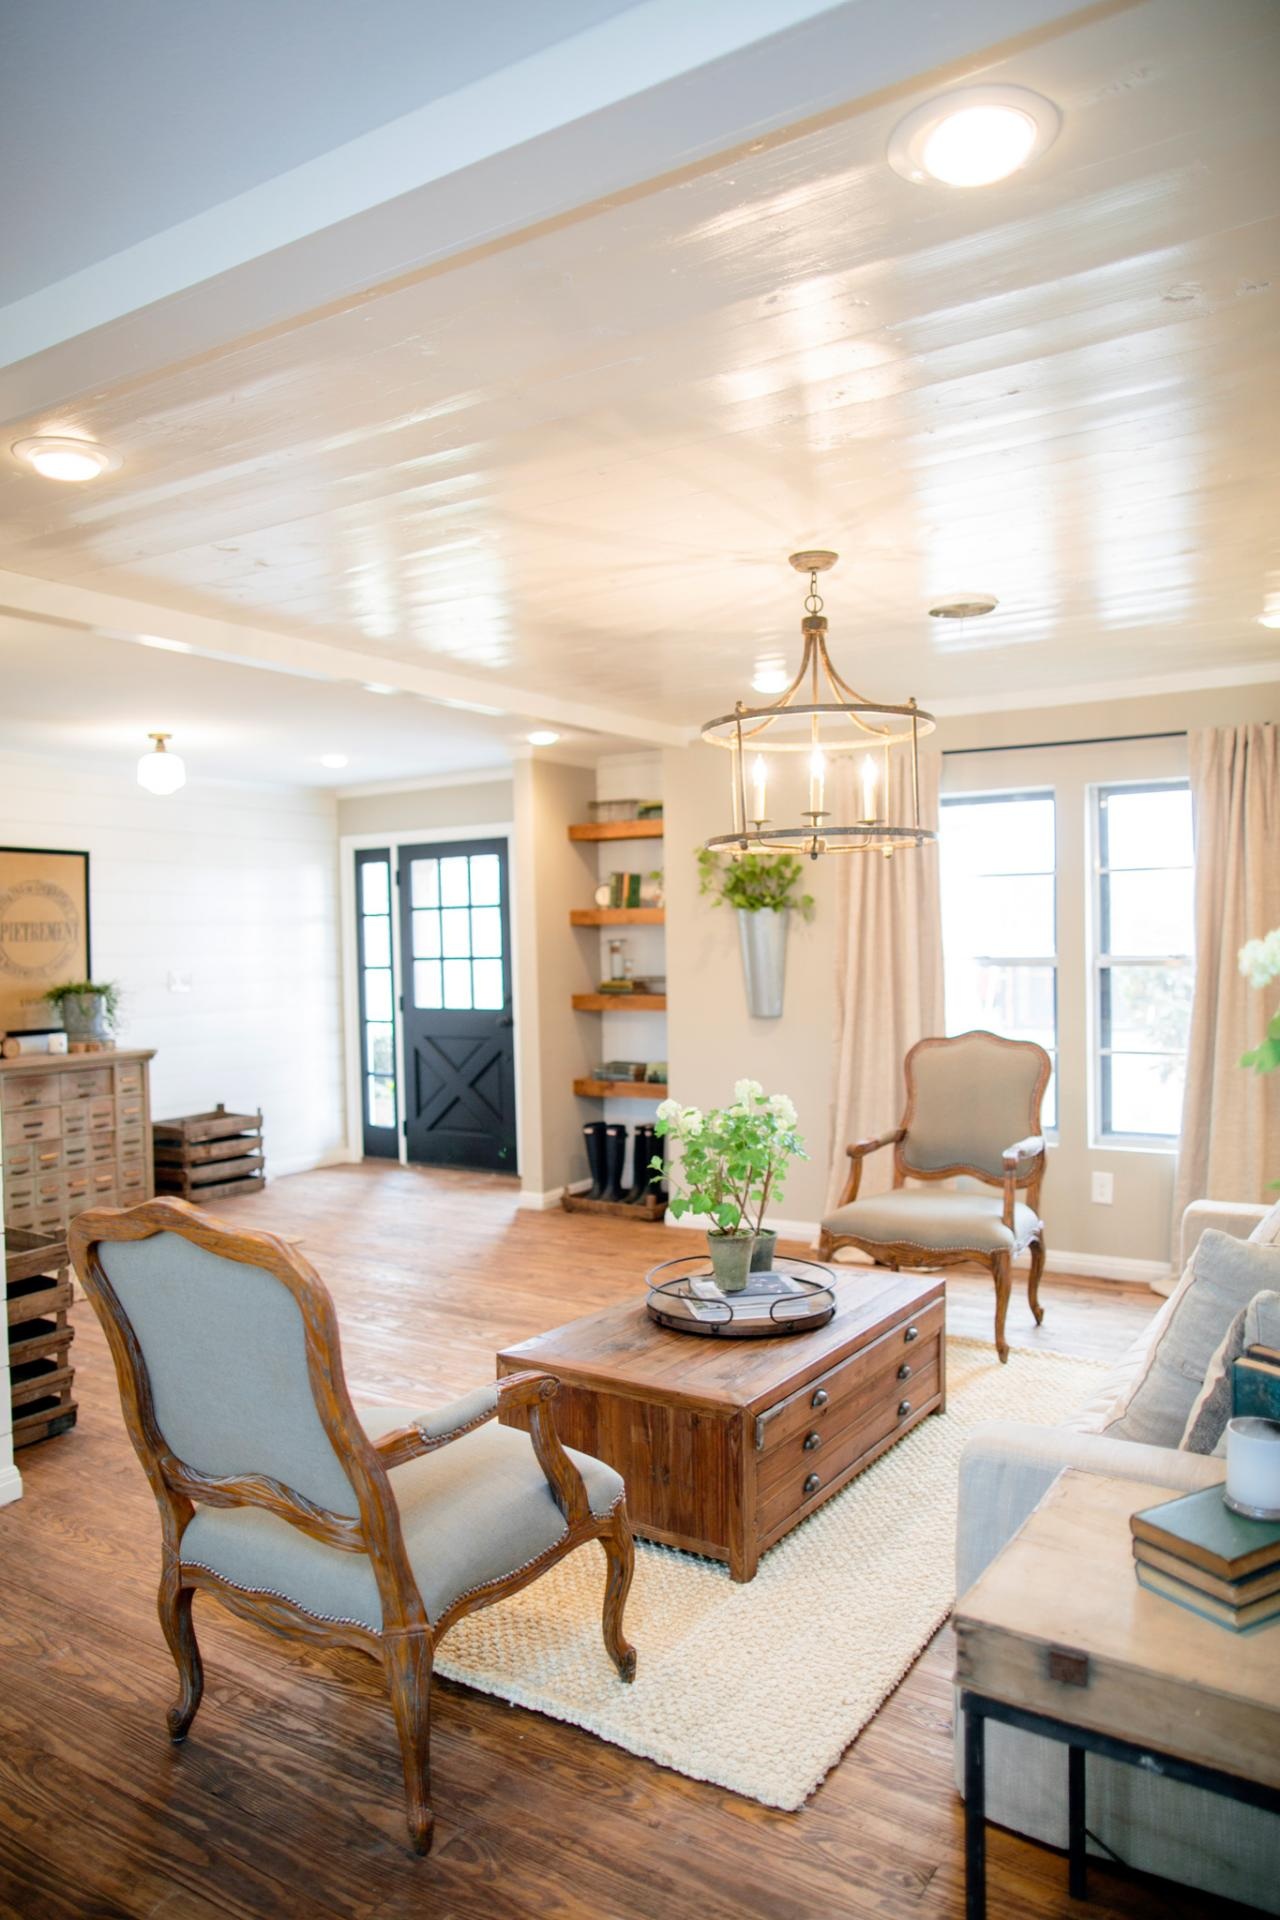 Ceiling Decorating Ideas For Living Room. Naturally Rustic 9 Design Tricks We Learned From Joanna Gaines  HGTV s Decorating